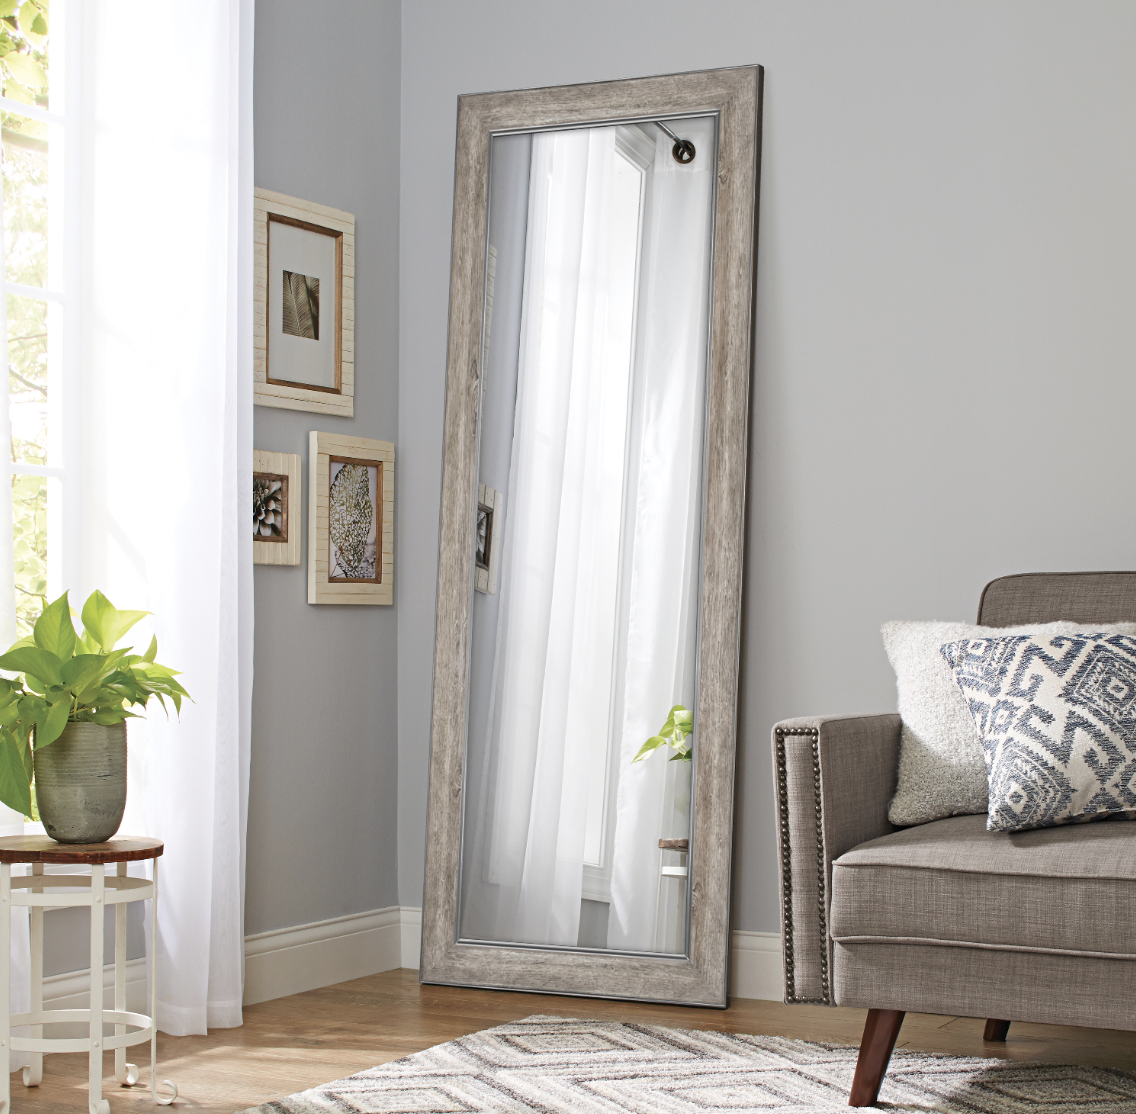 Rustic full length mirror for under $100